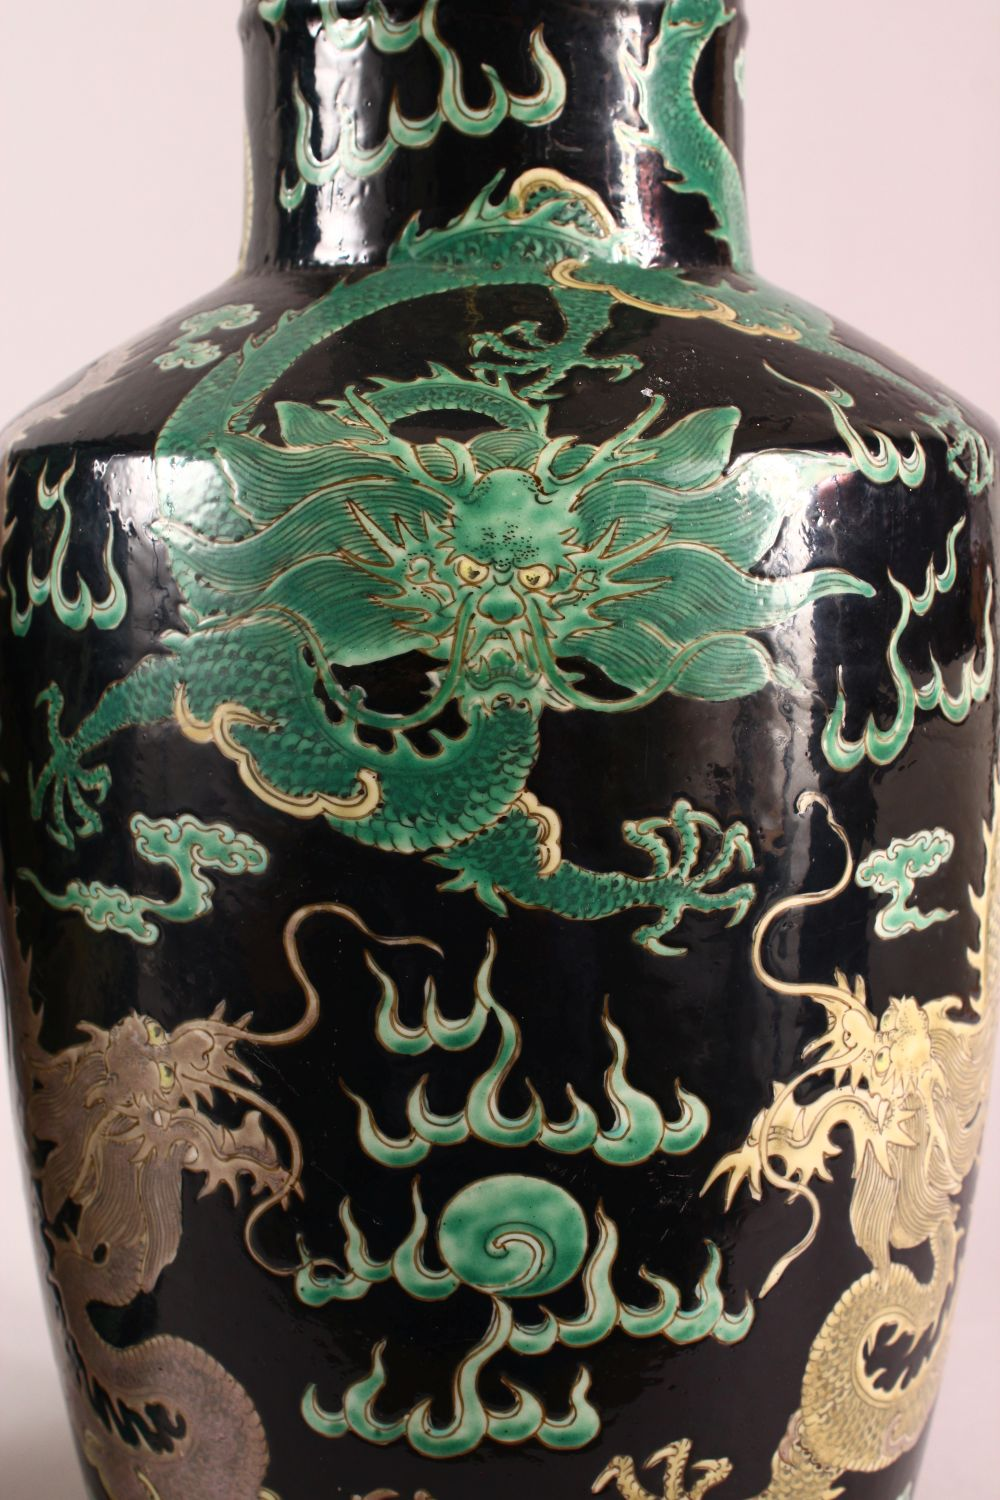 A LARGE PAIR OF CHINESE FAMILLE NOIR PORCELAIN DRAGON VASES, each vase with a black ground depicting - Image 2 of 13